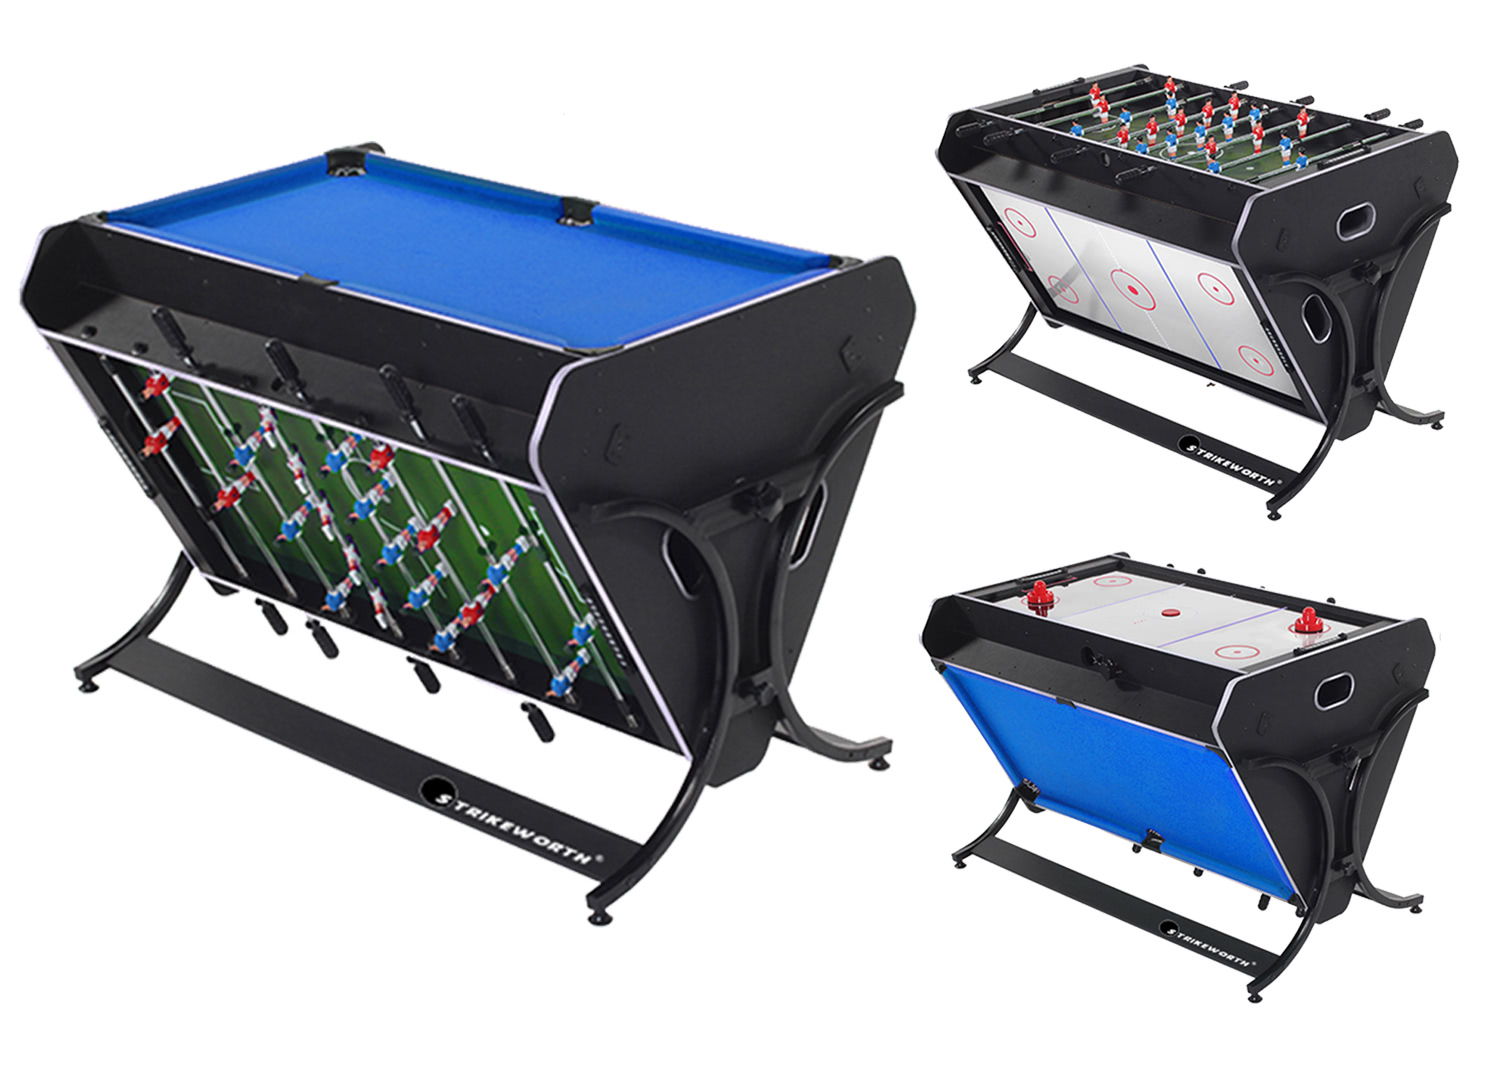 Coin Operated Foosball Table home pool tables mdf bed home pool tables